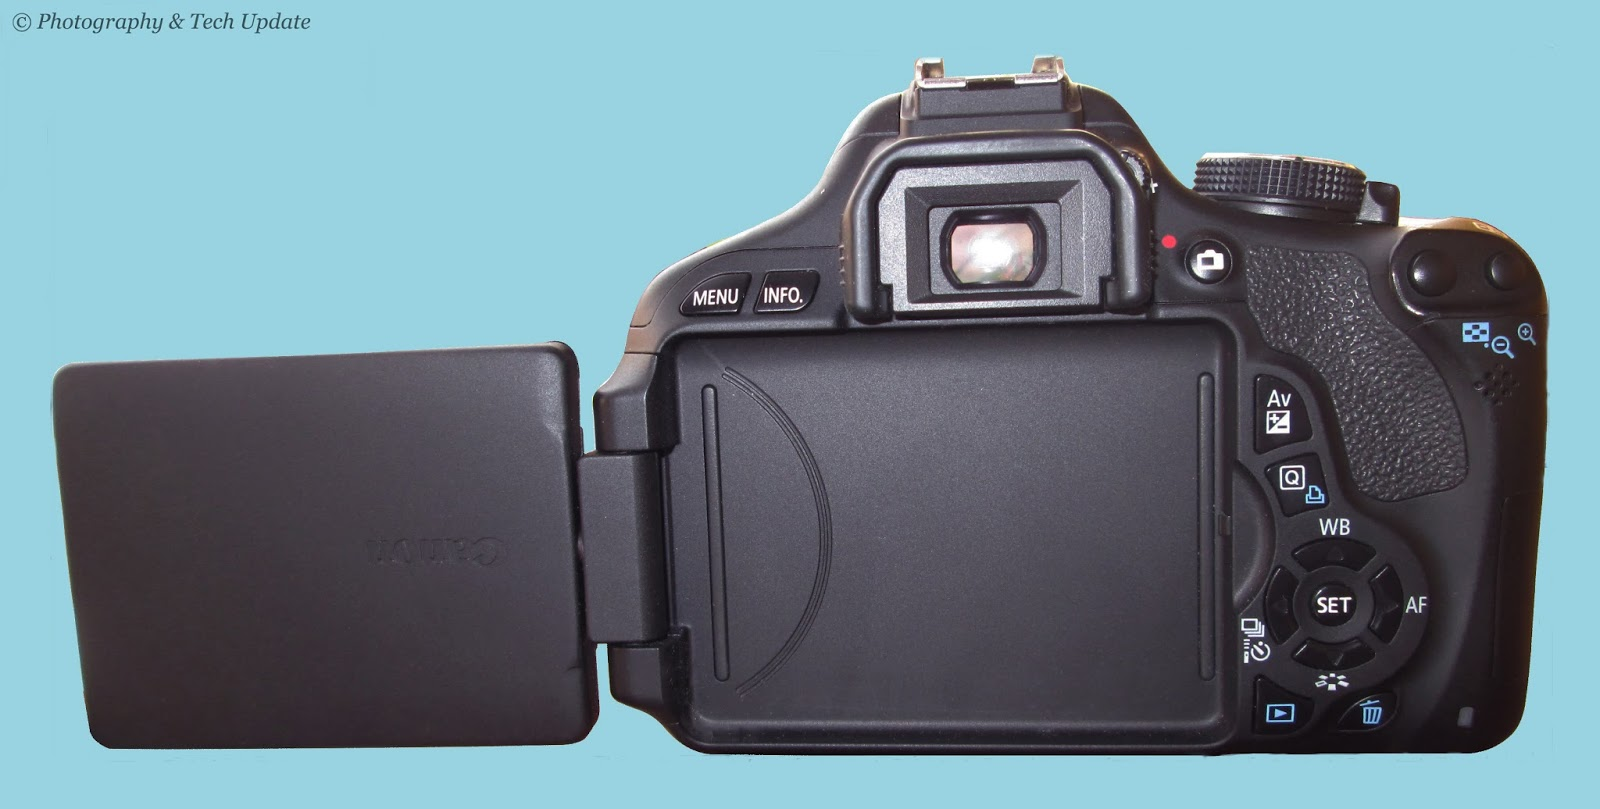 Canon EOS 600D/Rebel T3i Review | Photography & Tech Update